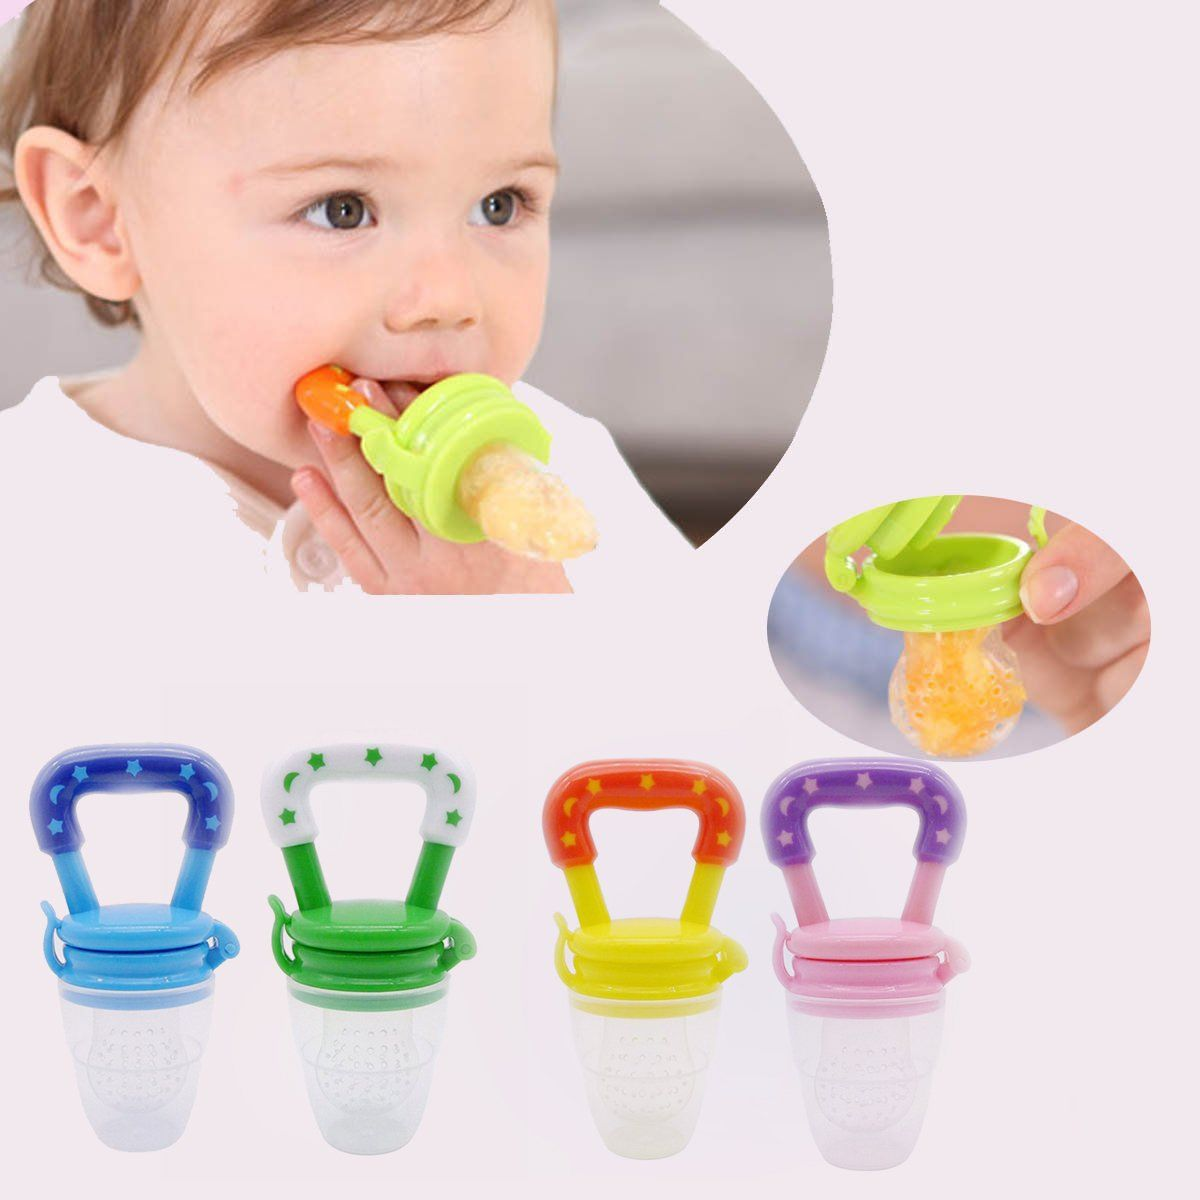 Baby Teething Toys Teether Dummy Infant Toy Teethers Newborn Feeding Infant Kids